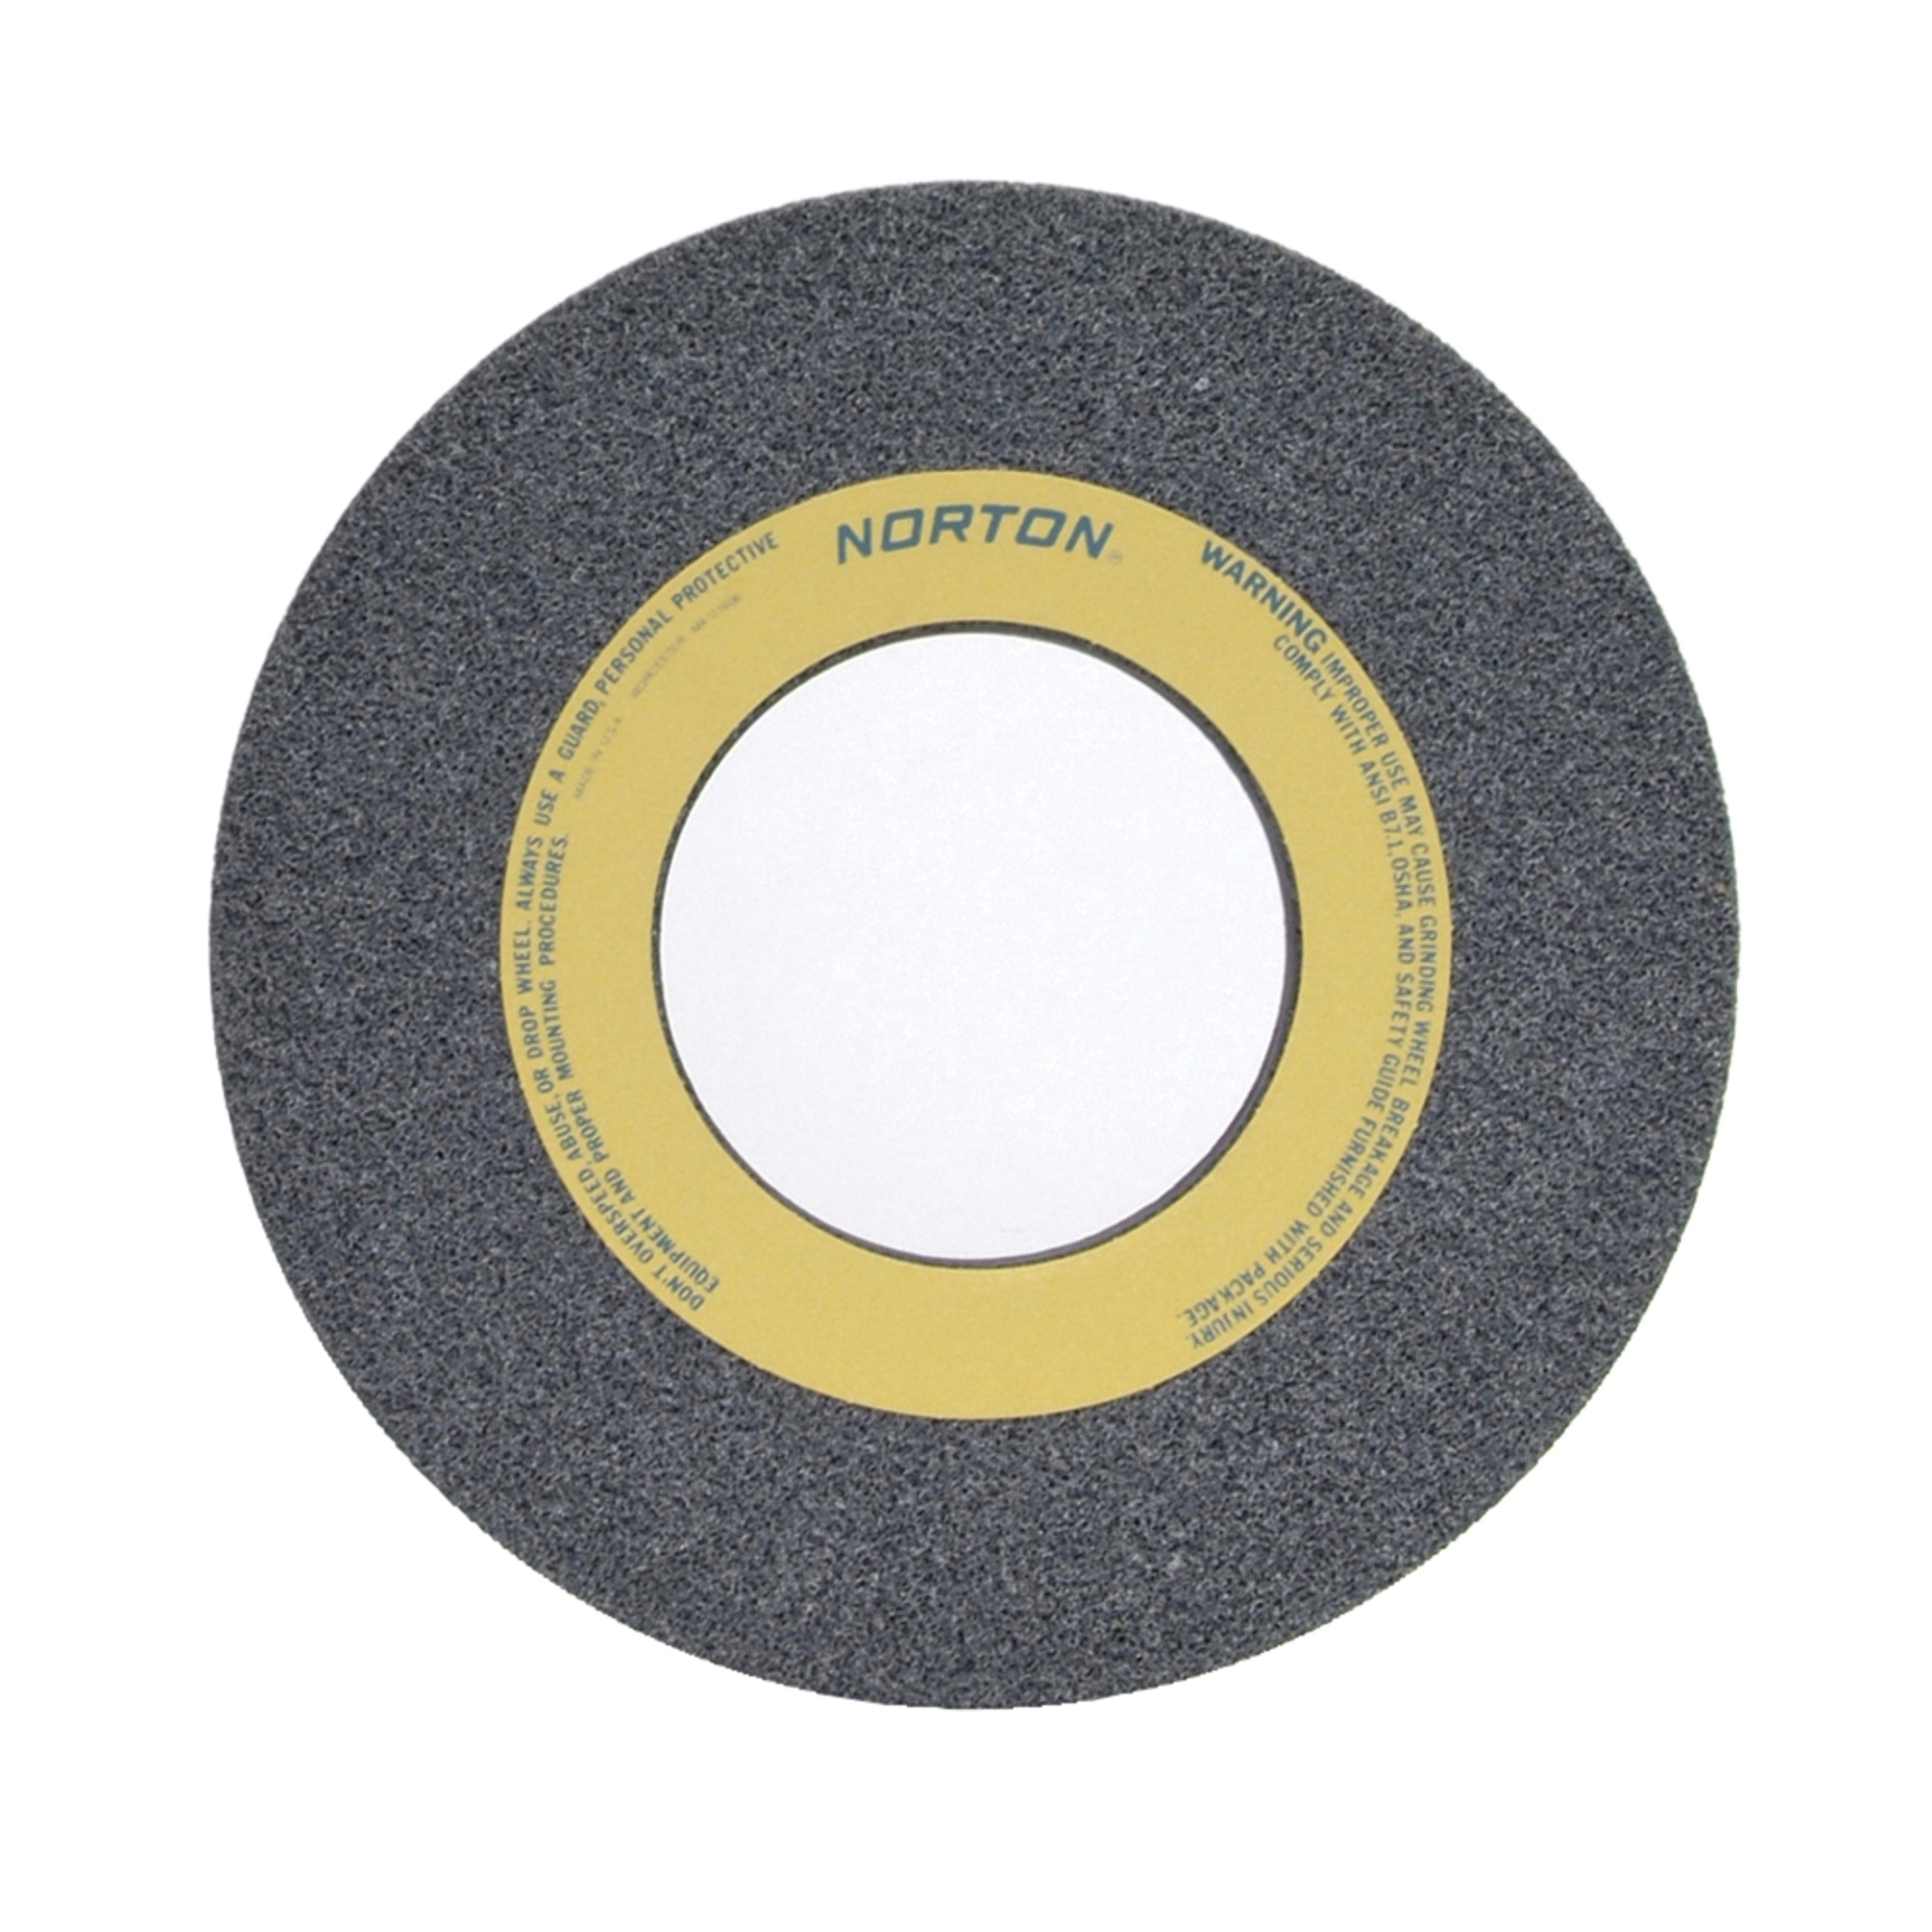 Norton® 66253363921 32A Straight Toolroom Wheel, 14 in Dia x 1 in THK, 5 in Center Hole, 46 Grit, Aluminum Oxide Abrasive